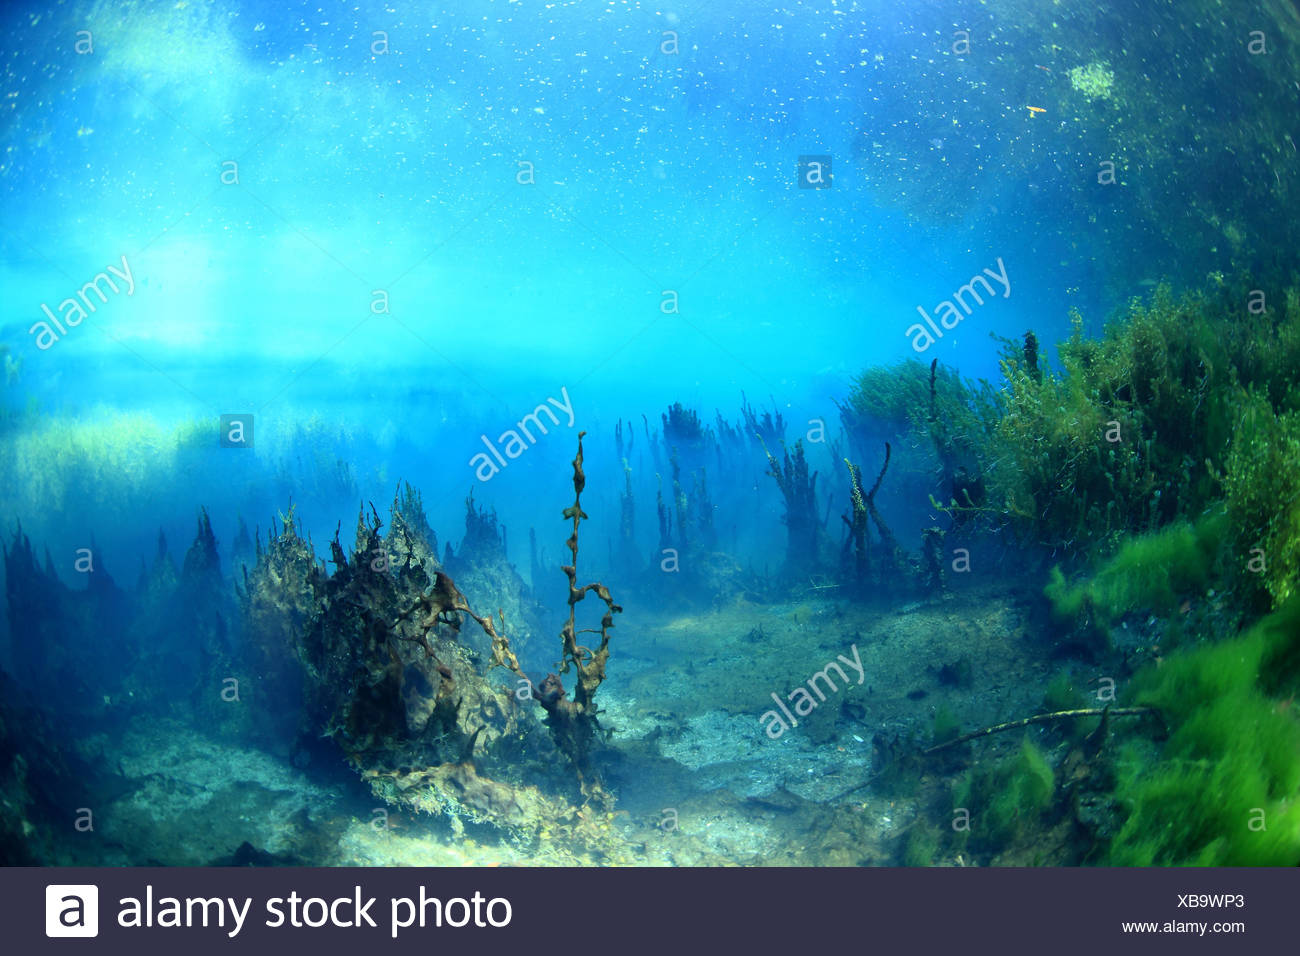 Bacterial mats and decomposition - Backwater Rhone France Stock Photo